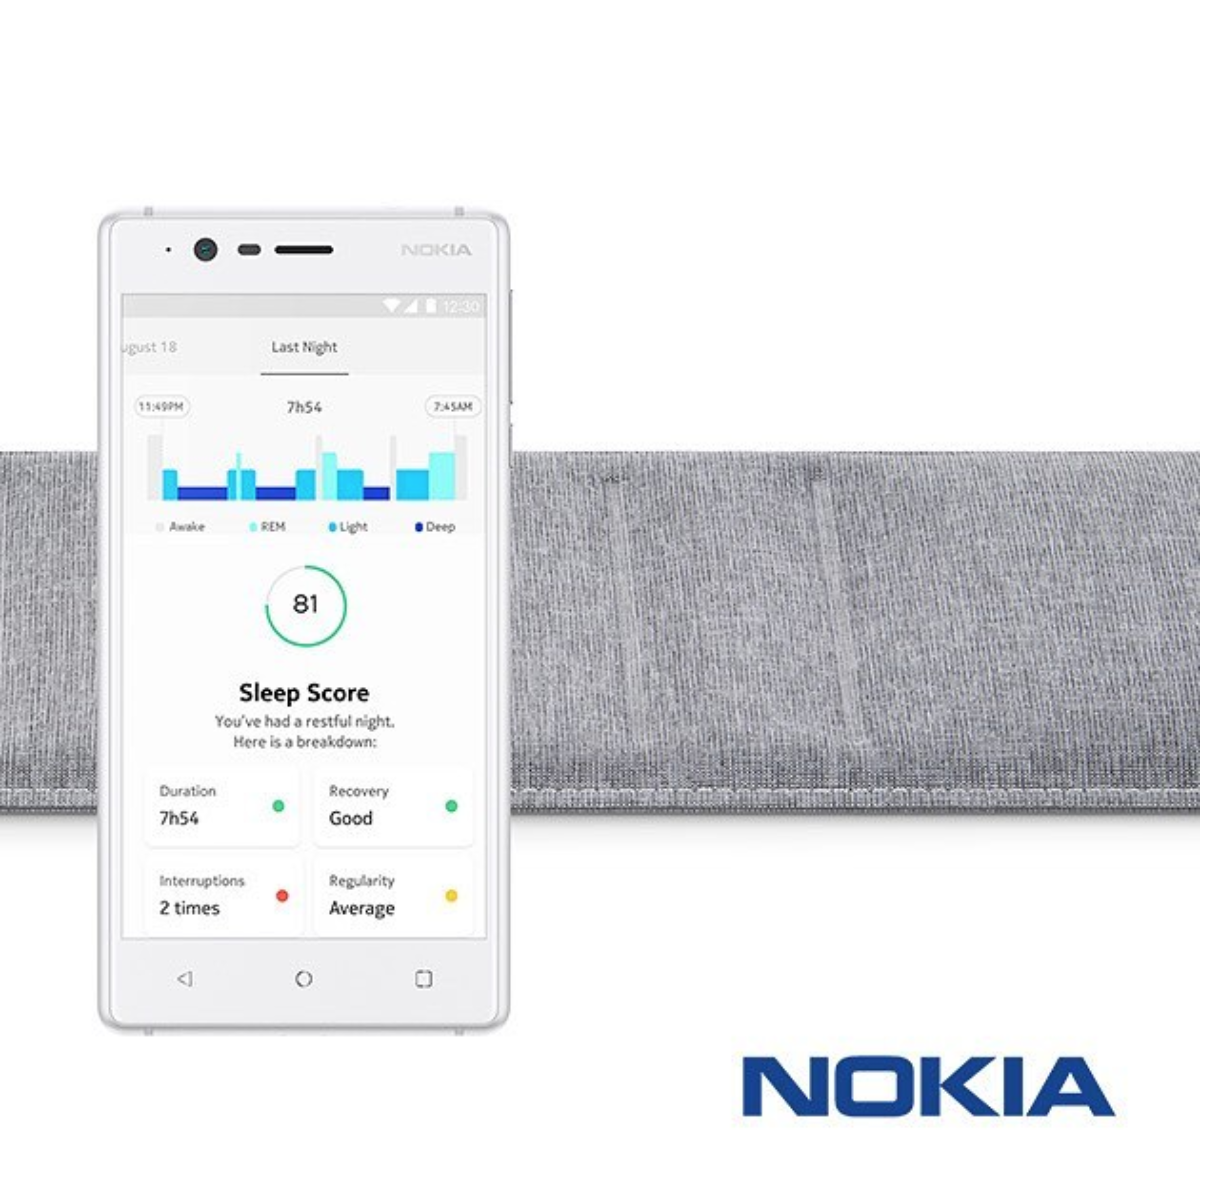 Electronics Giant Nokia Launches Sleep Tracking Pad